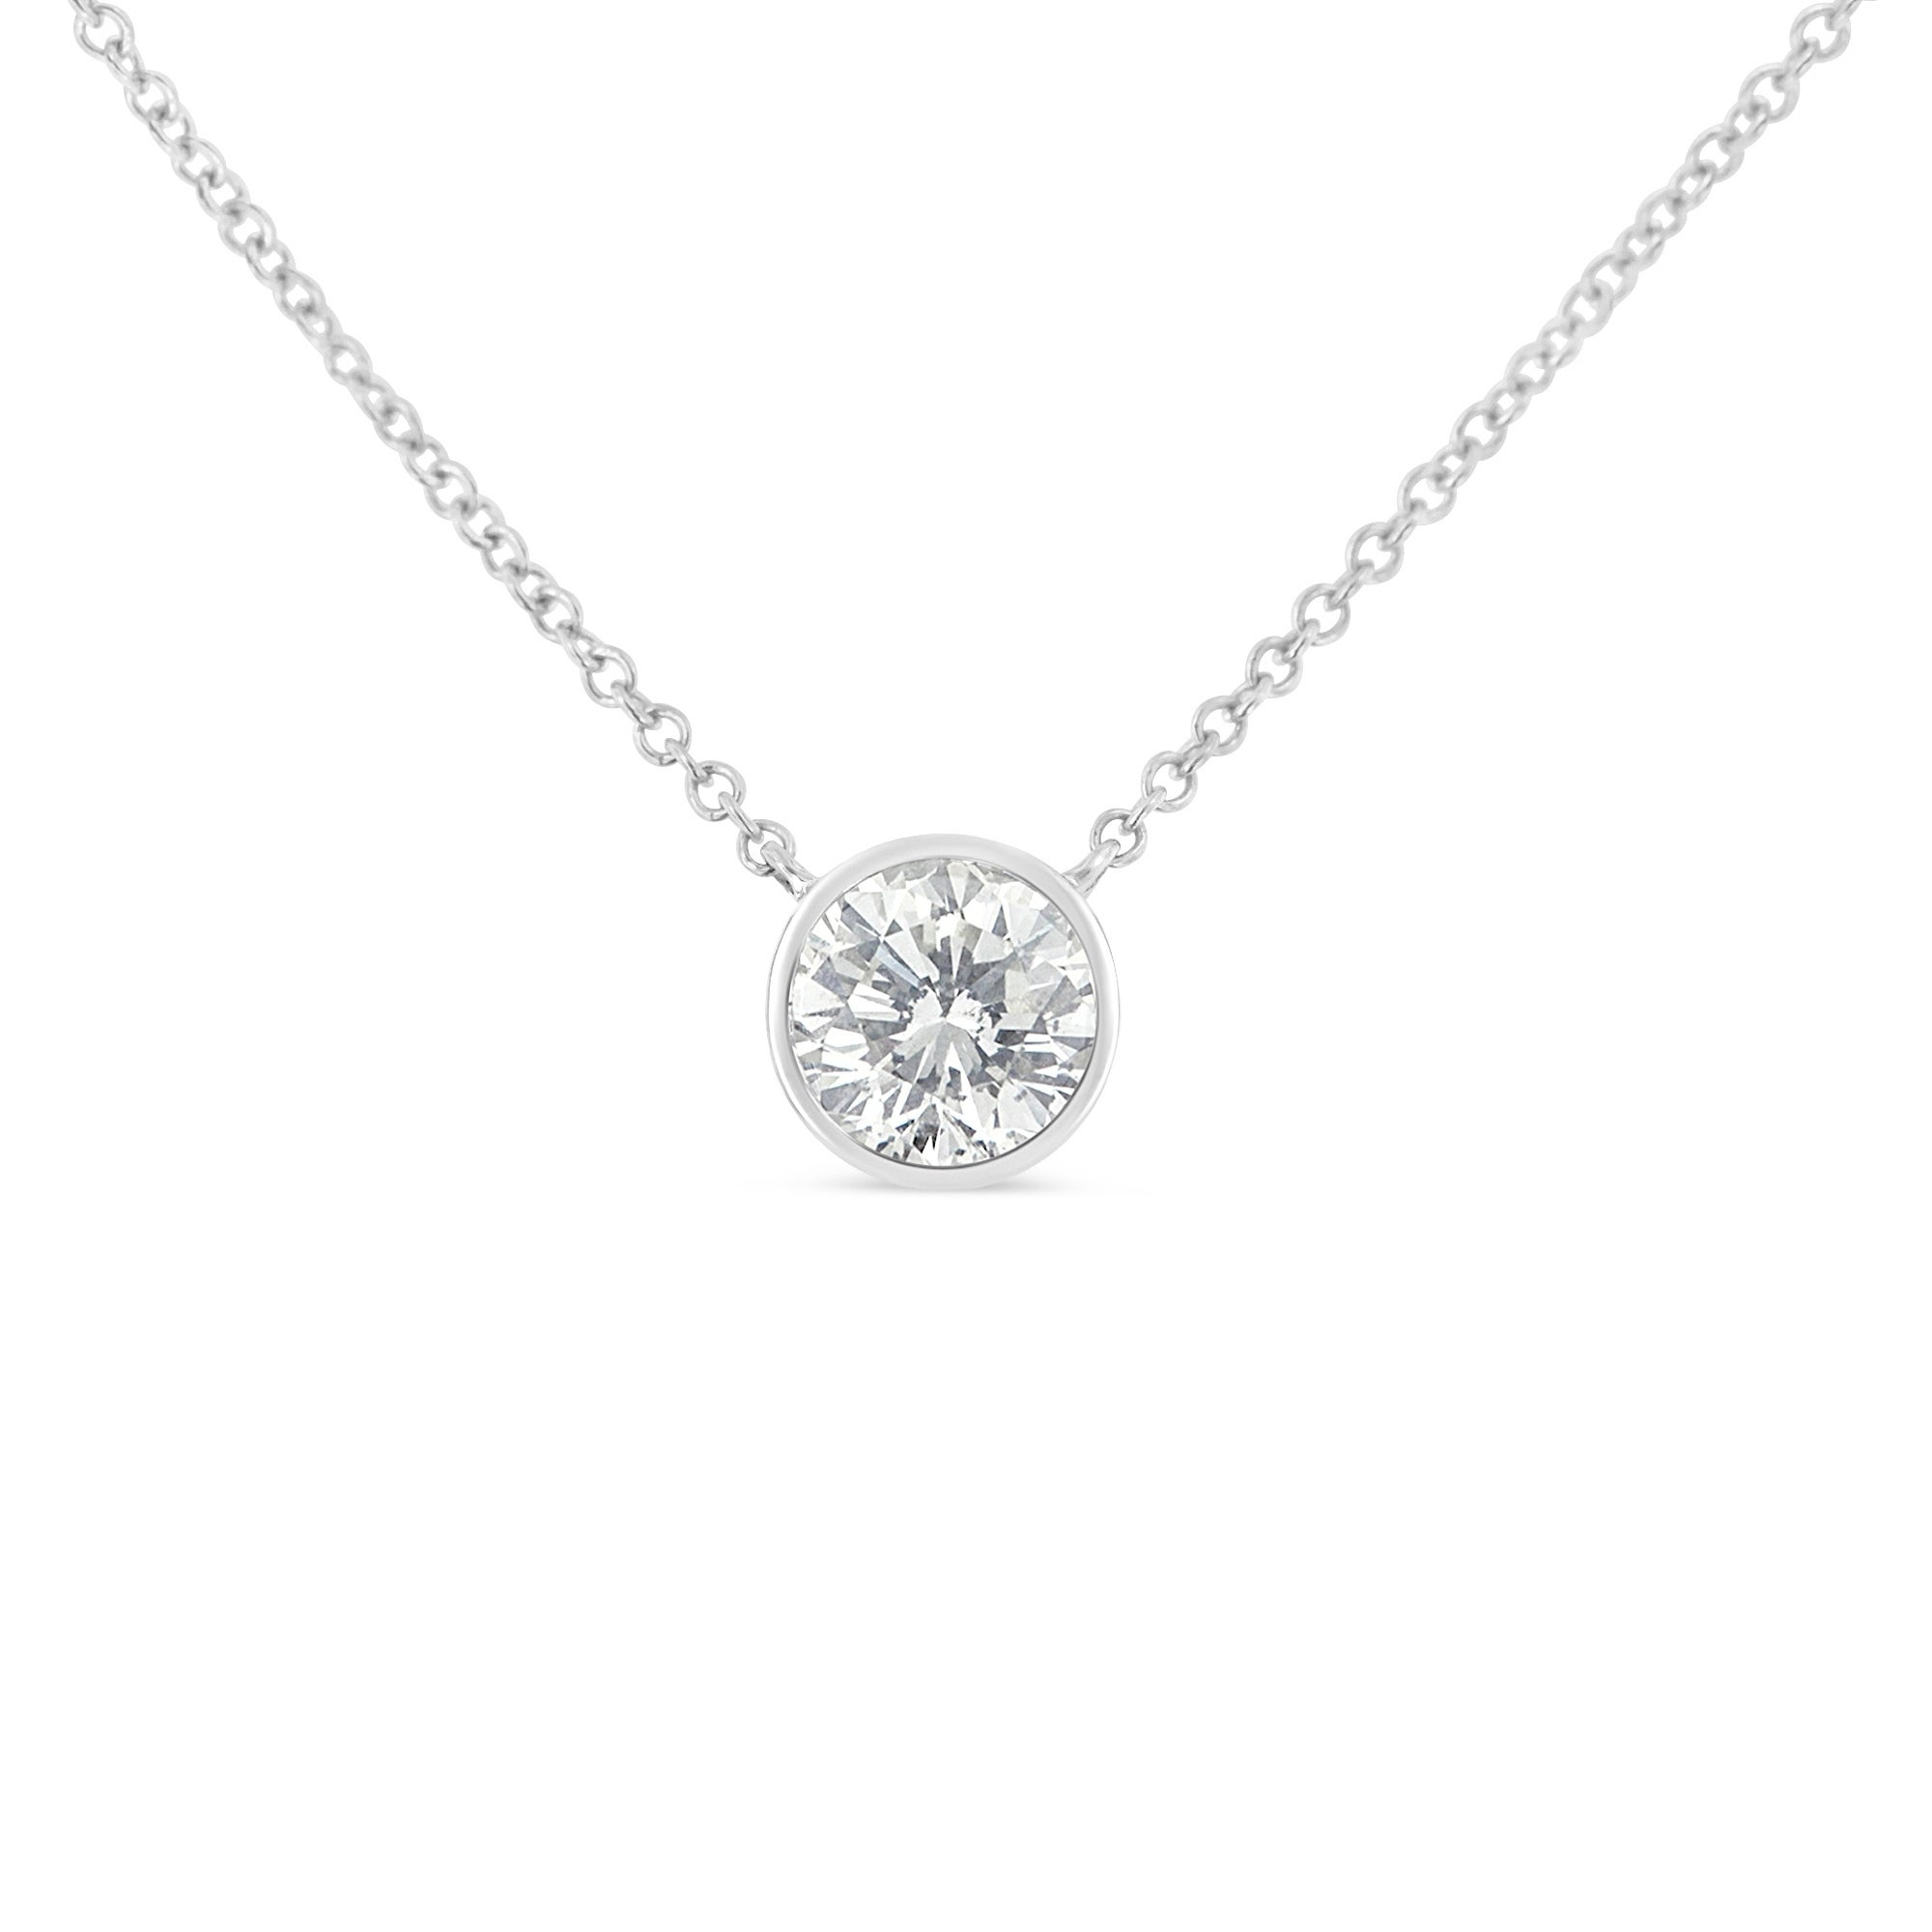 set default pendant bezel cubic n solitaire zirconia cut necklace round rhodium sterling silver plated